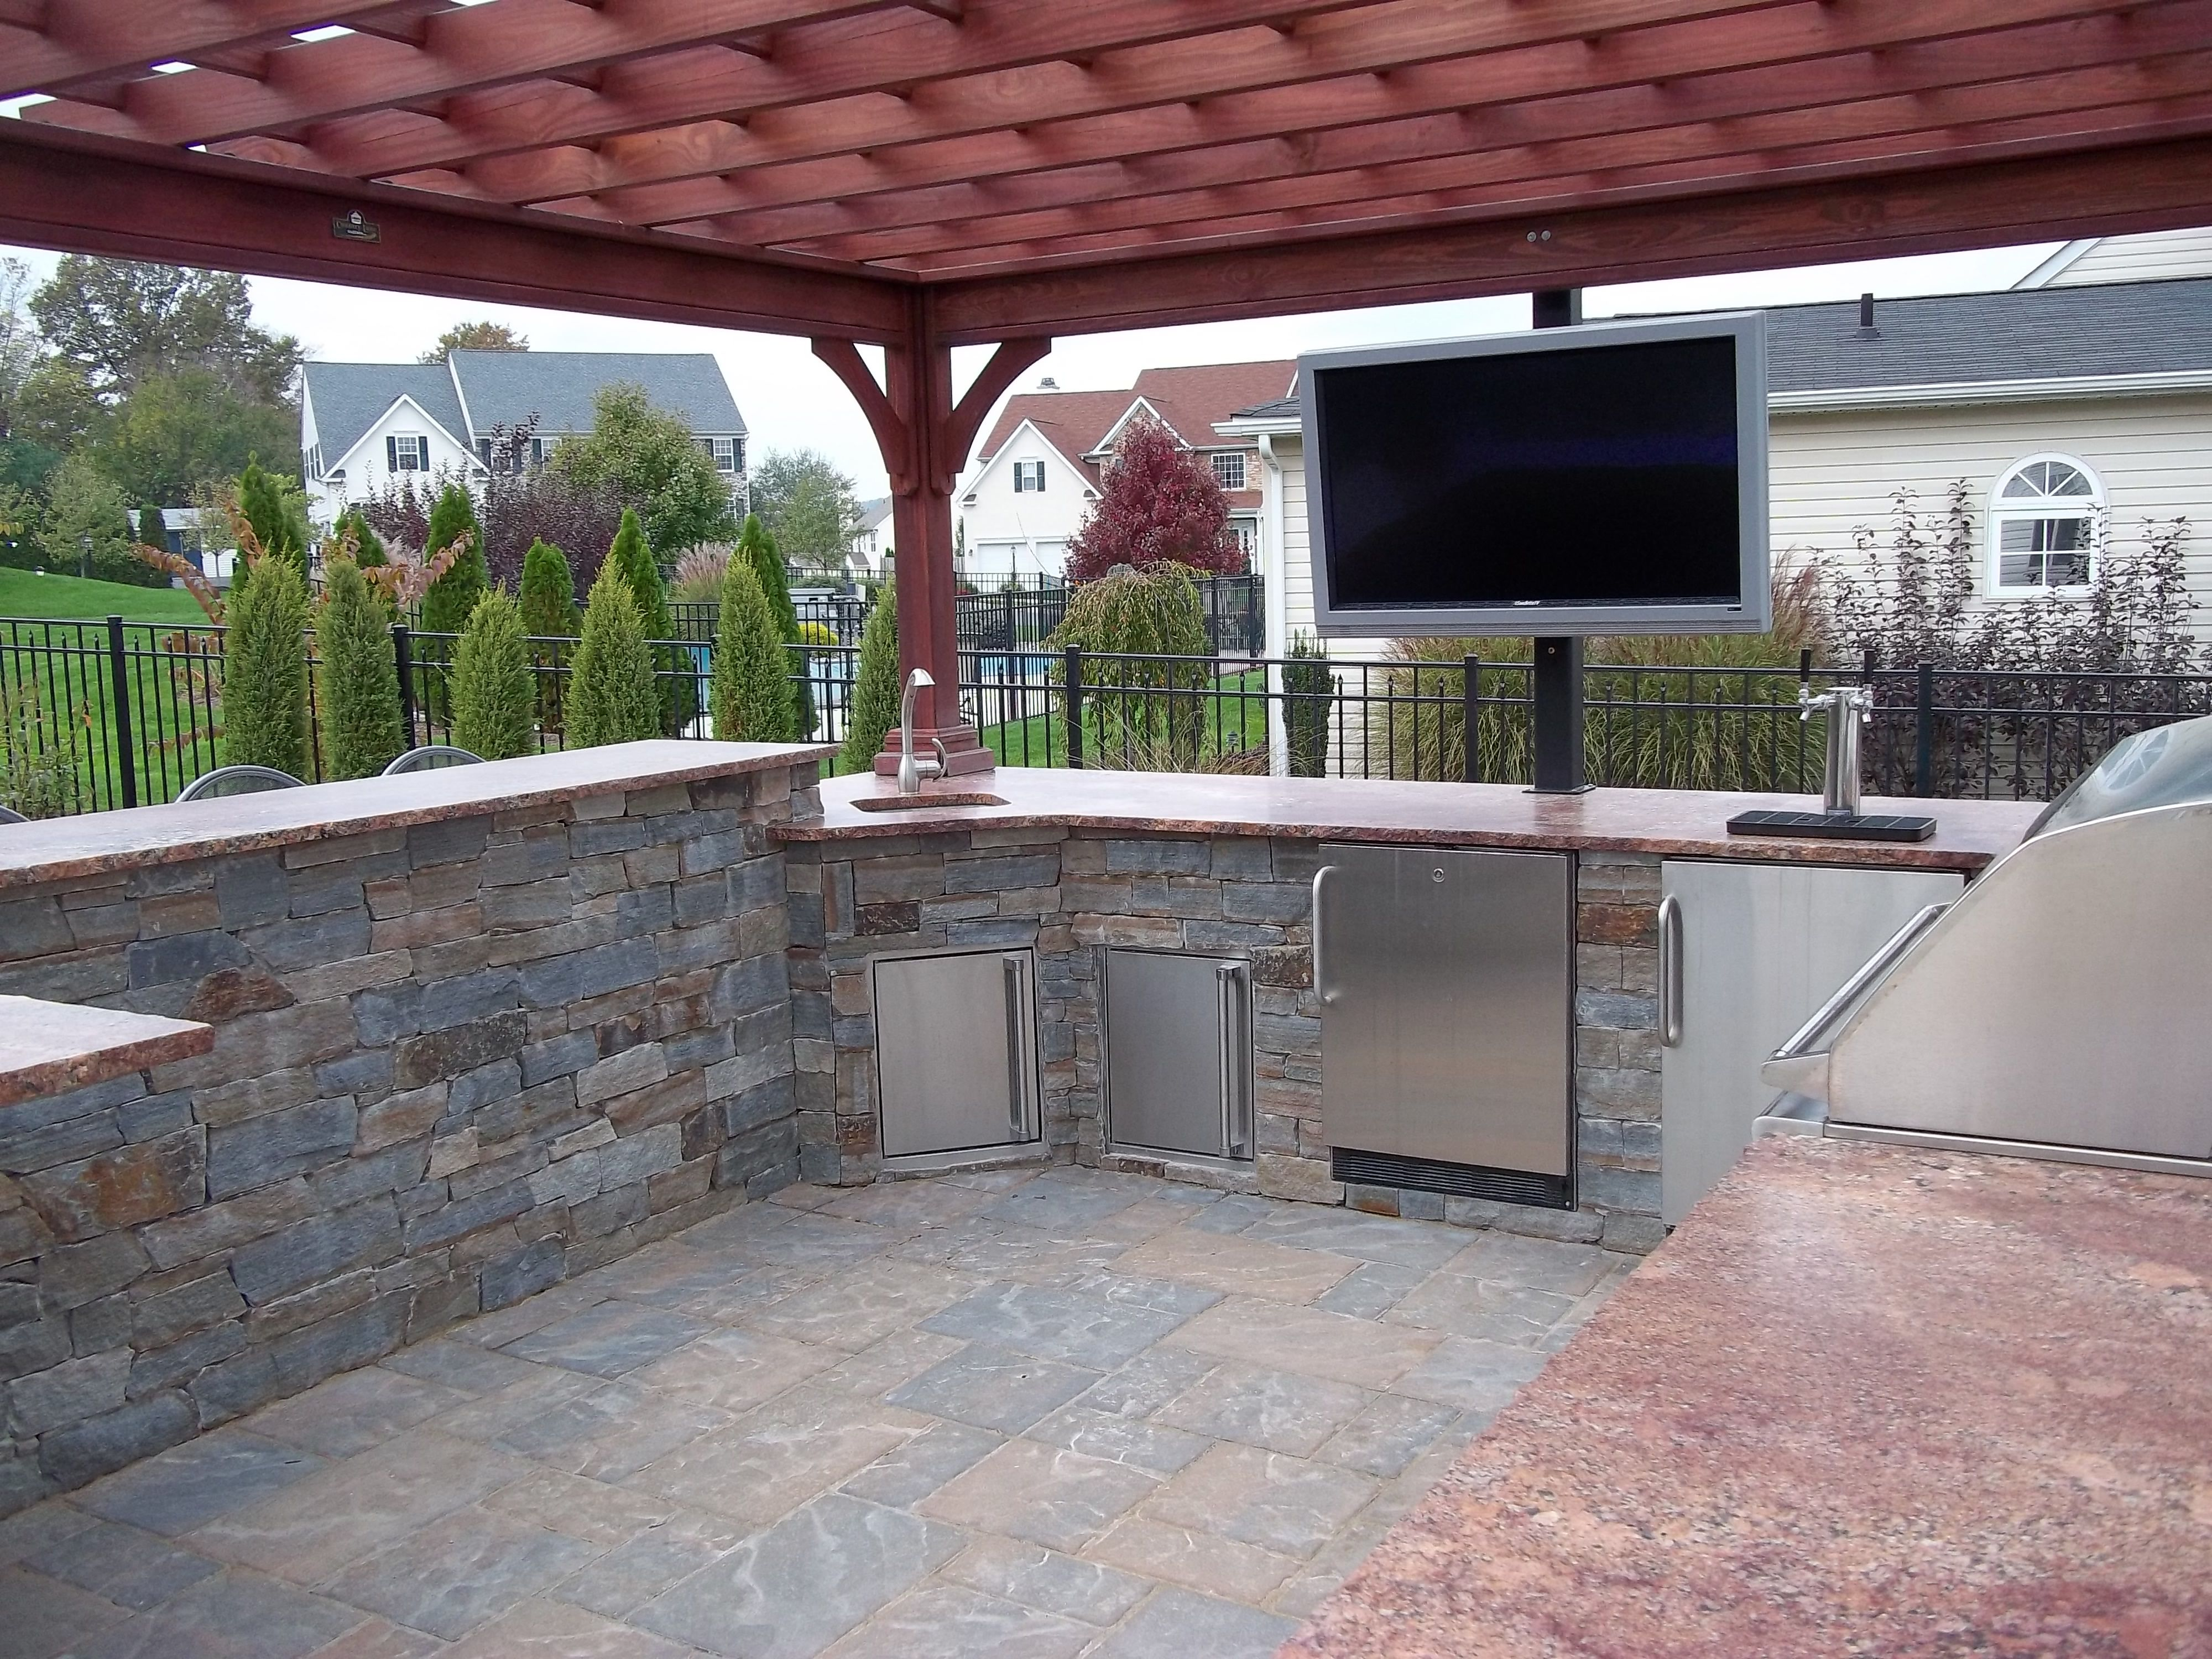 outdoor kitchen griddle storage ideas for small spaces grill fridge beer tap and tv